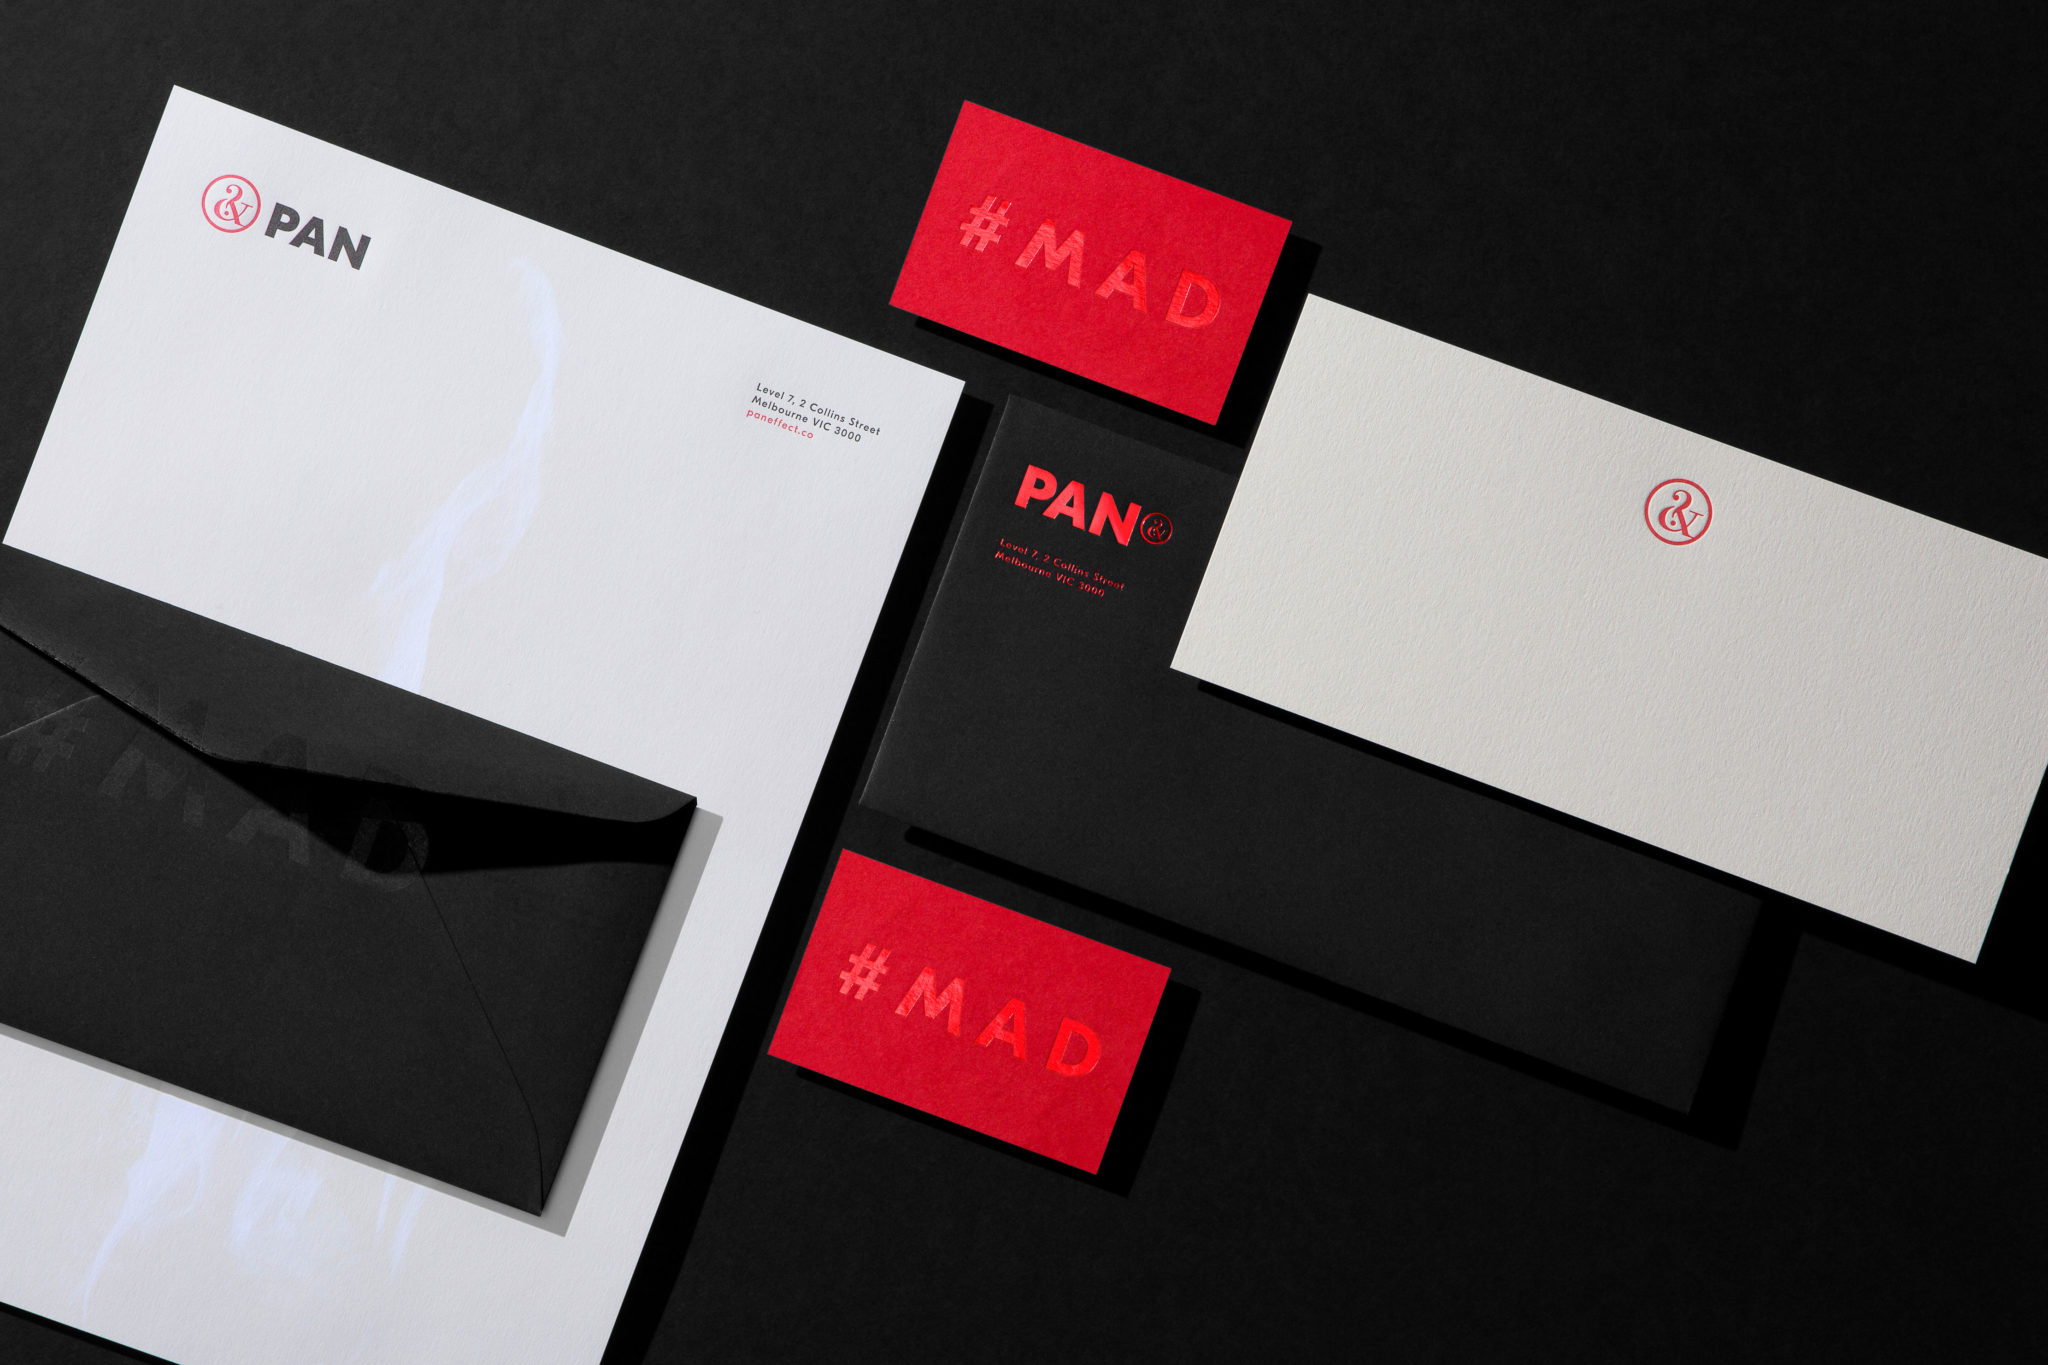 Red Foil and Letterpress Business Cards With Compliments Letterhead Envelopes for PAN on Colorplan Bright Red duplexed to Colorplan Mist 2